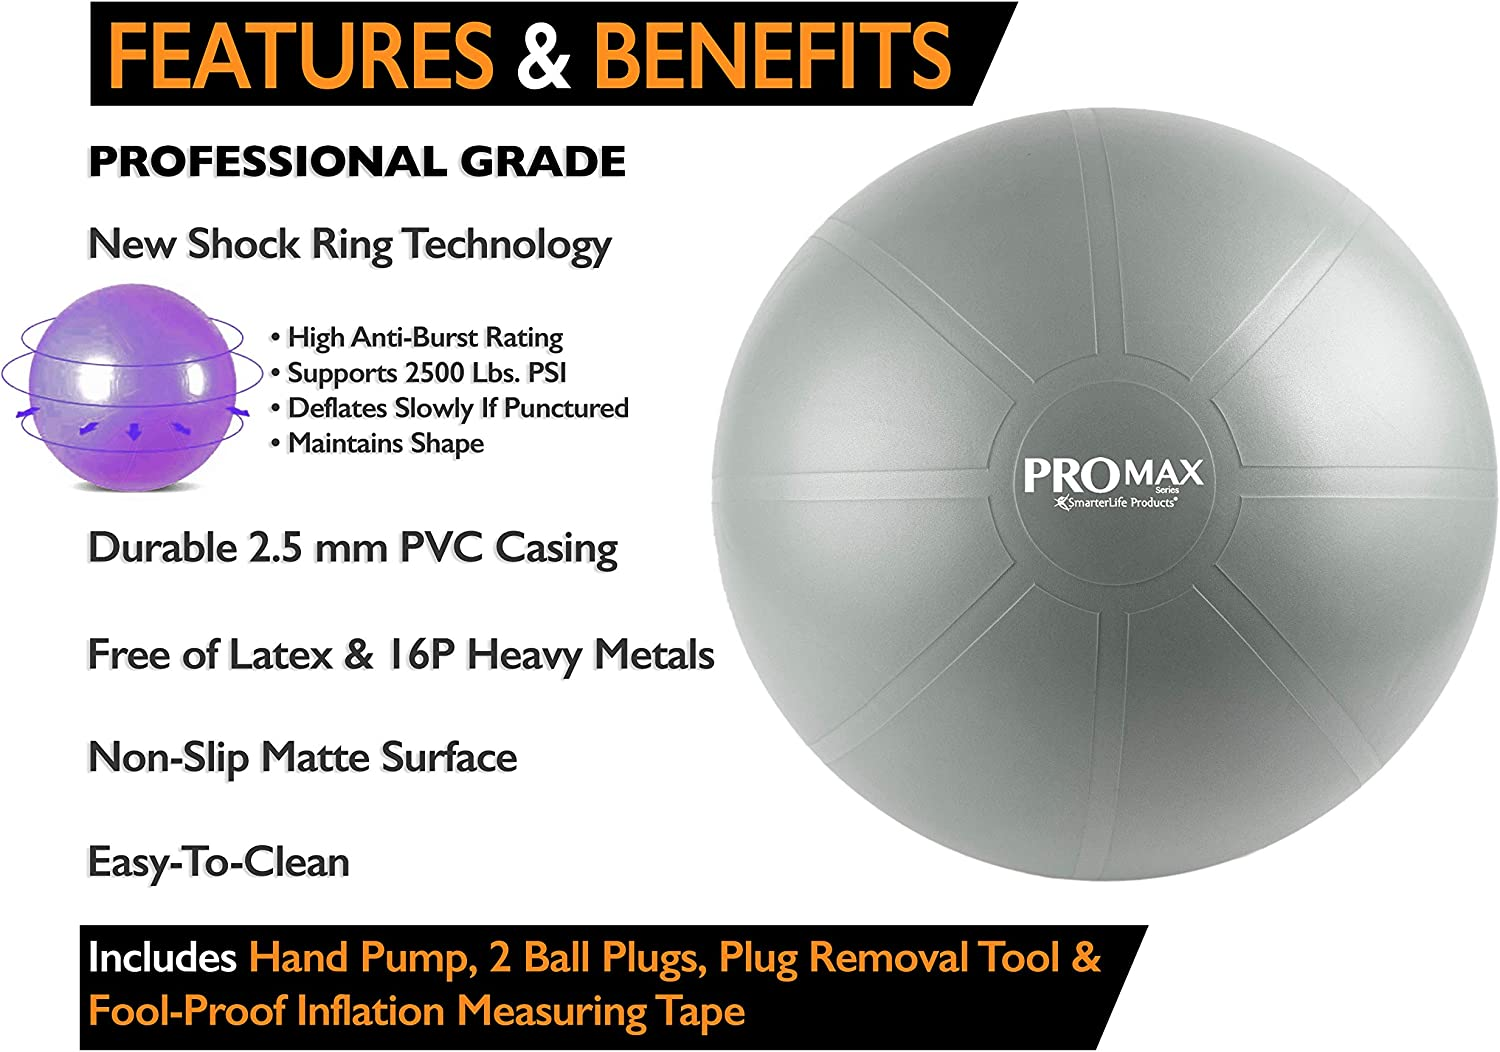 Pilates Birthing Office Ball Chair PRO MAX Exercise Ball by SmarterLife Fitness Stability Therapy Professional Grade Extra Thick Yoga Ball for Balance Flexible Seating